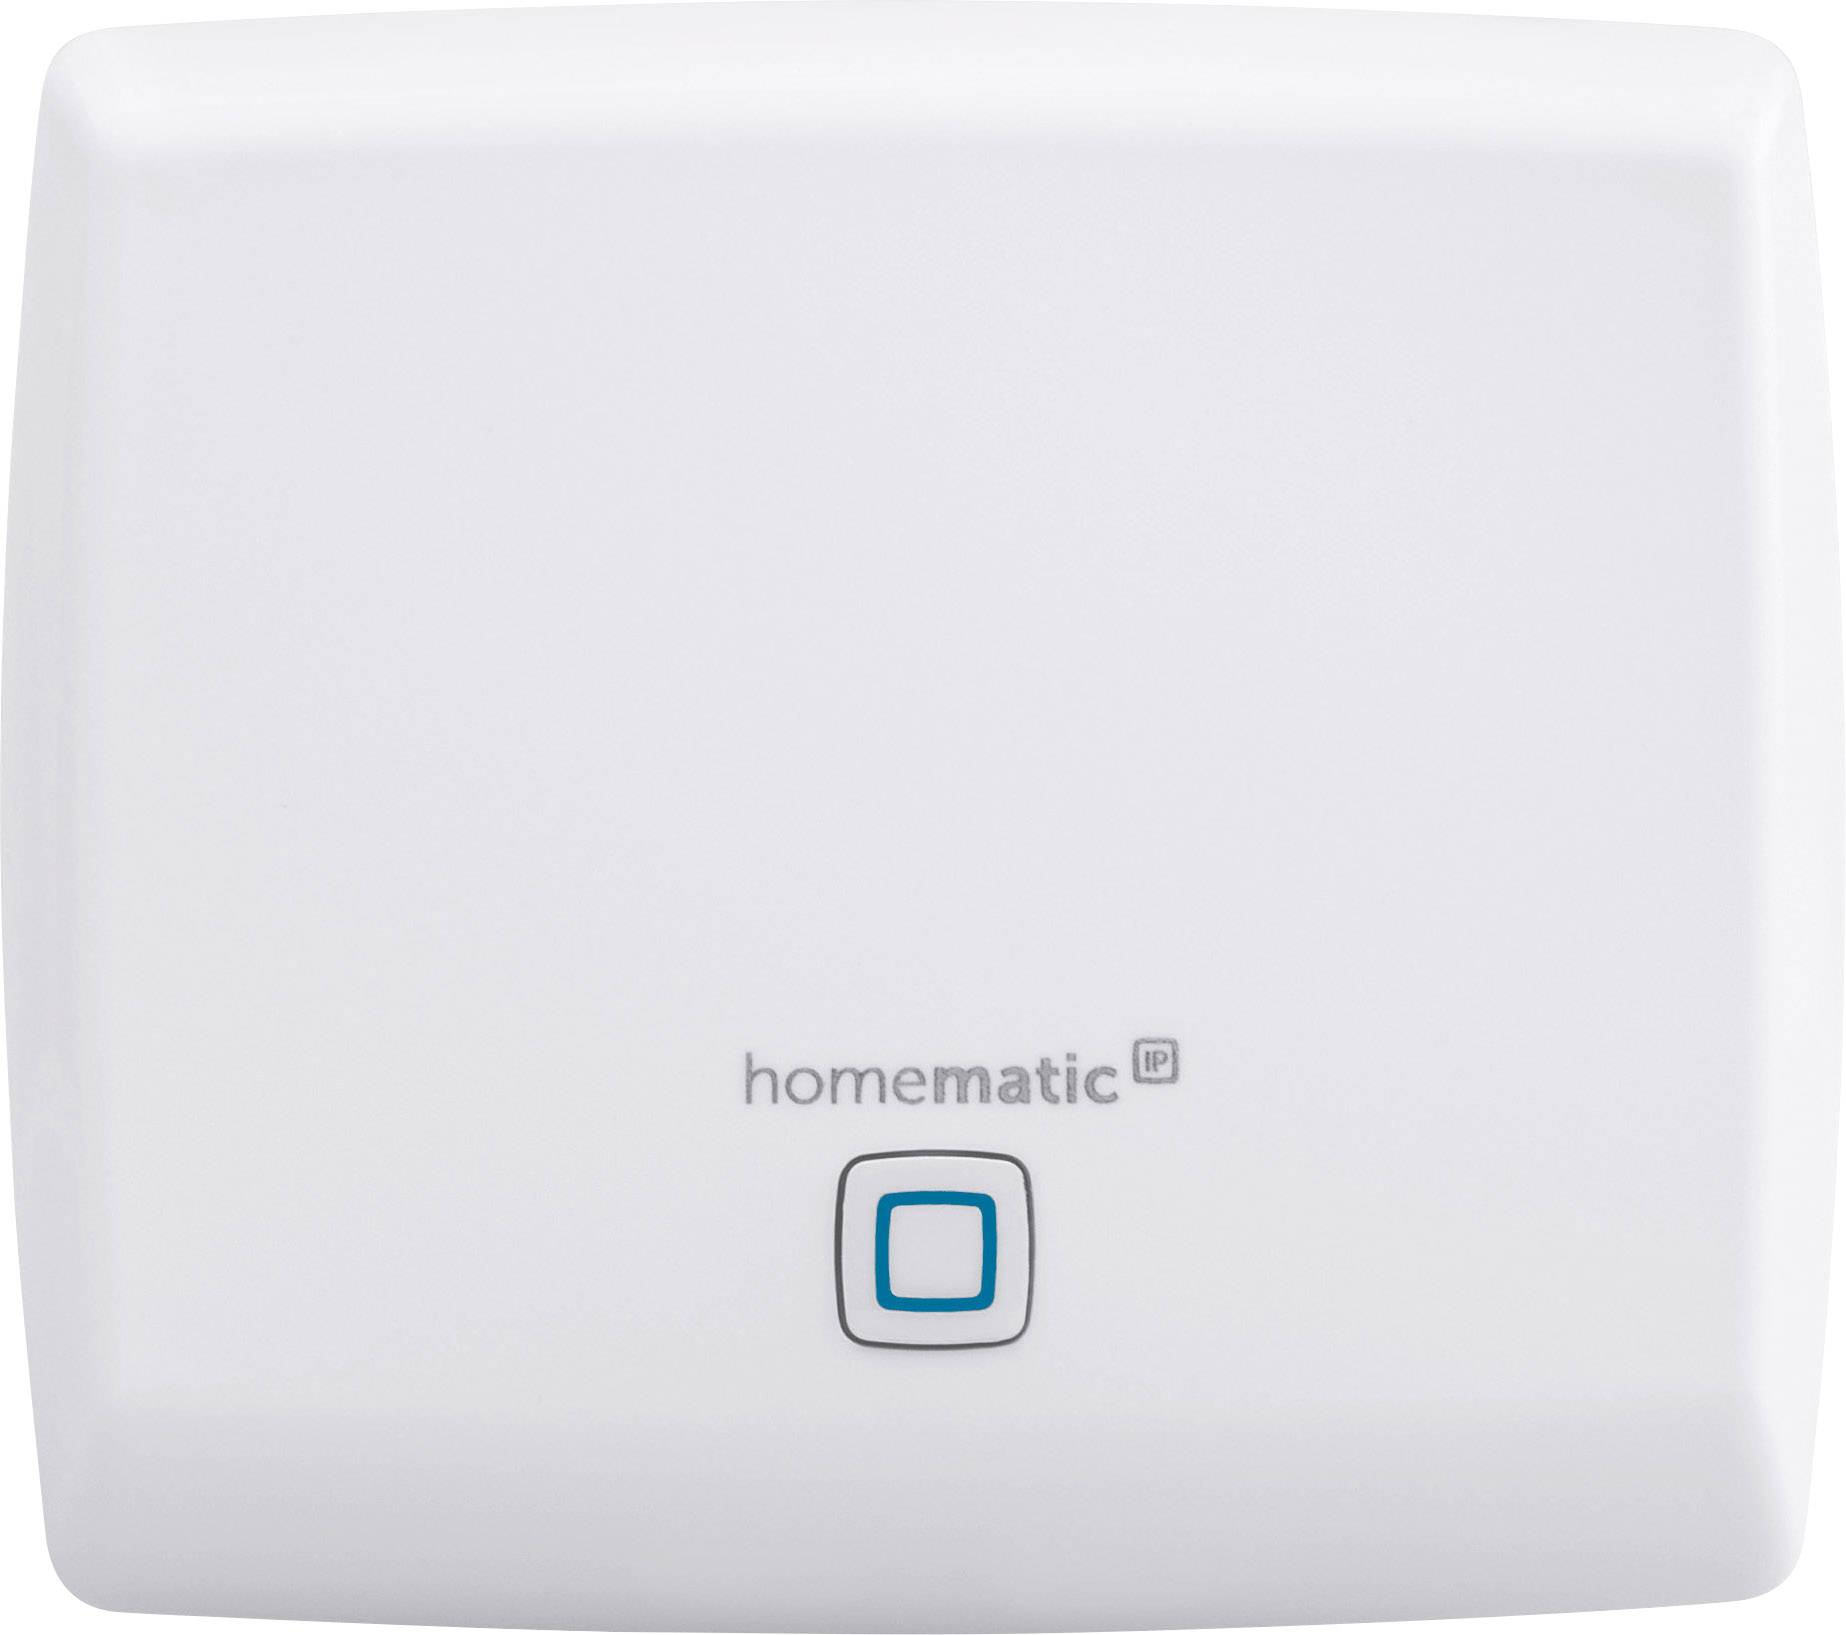 Bezdrátová centrála Homematic IP Access Point